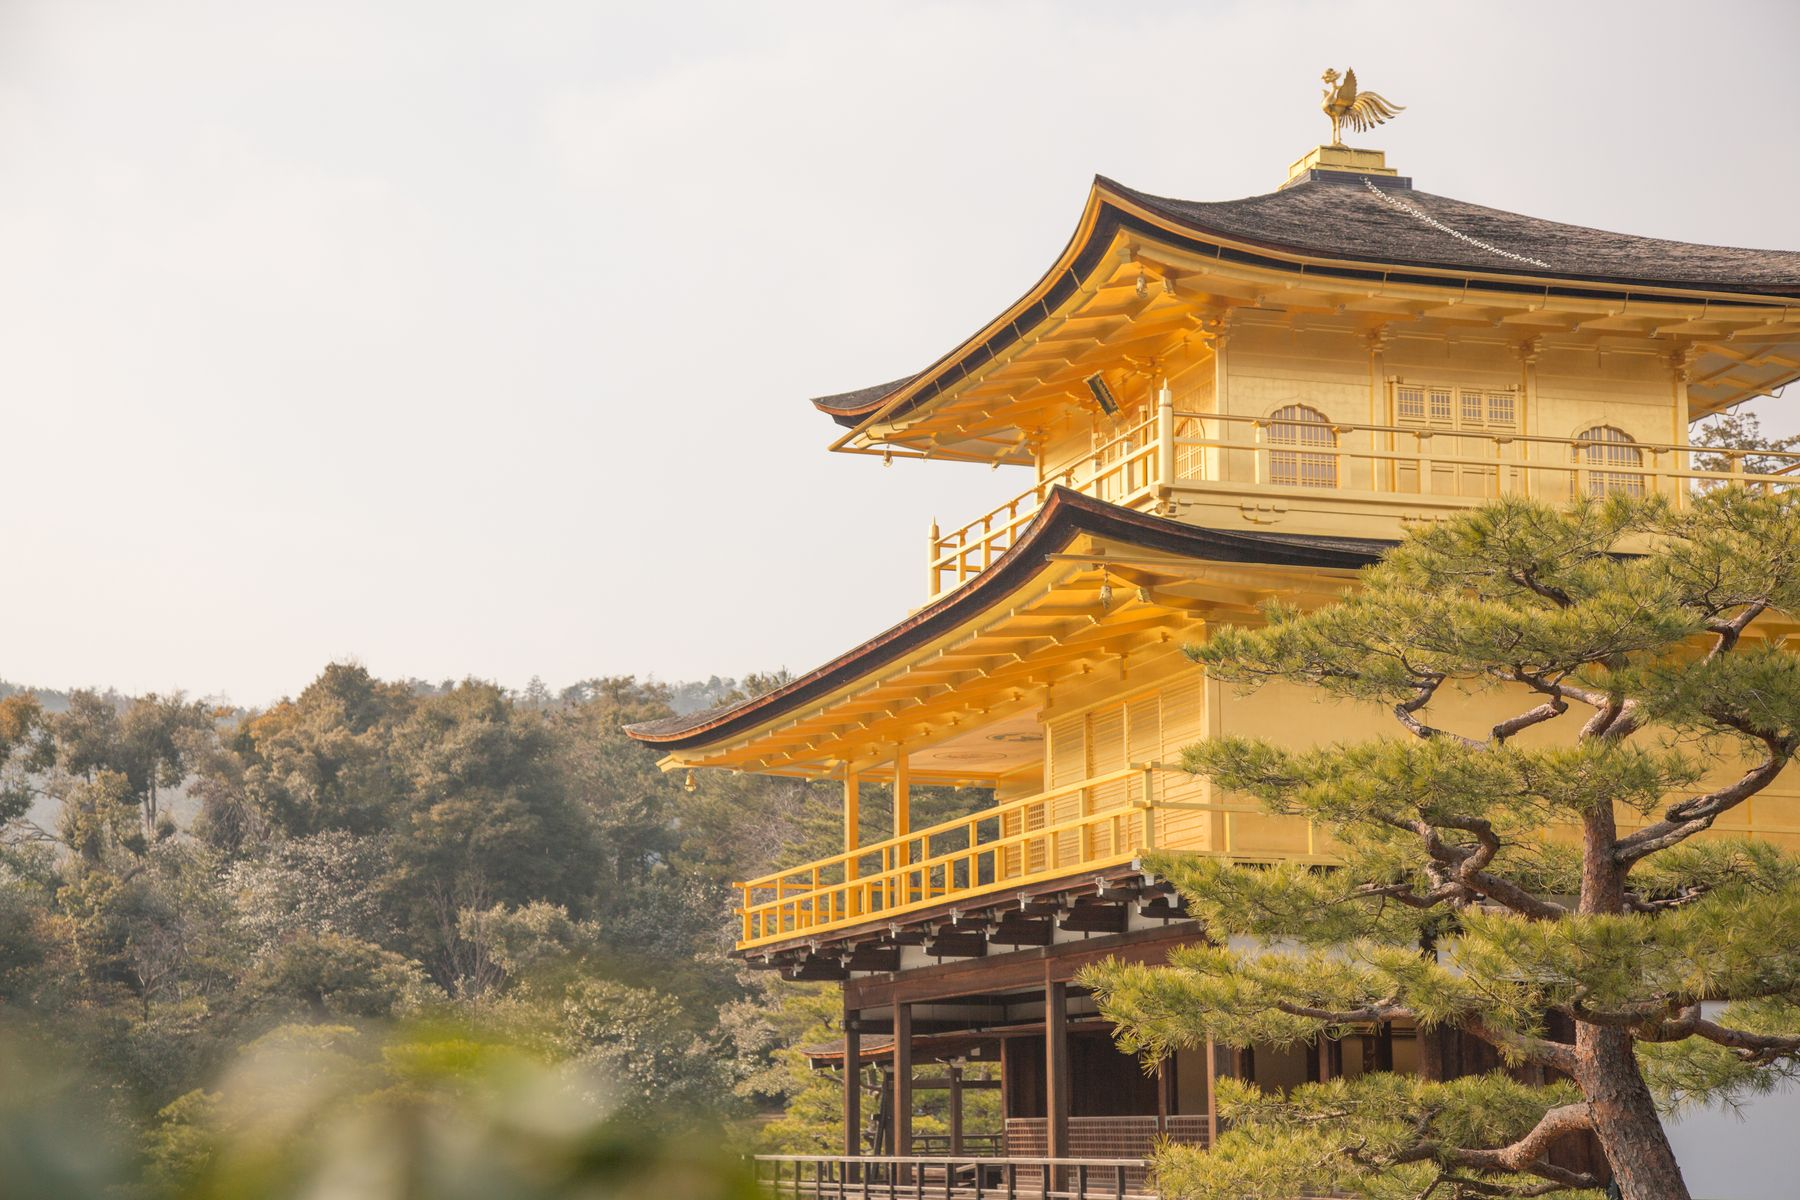 Photo shows a traditional yellow and brown Pagoda style temple with a tree in the foreground and hills behind it.